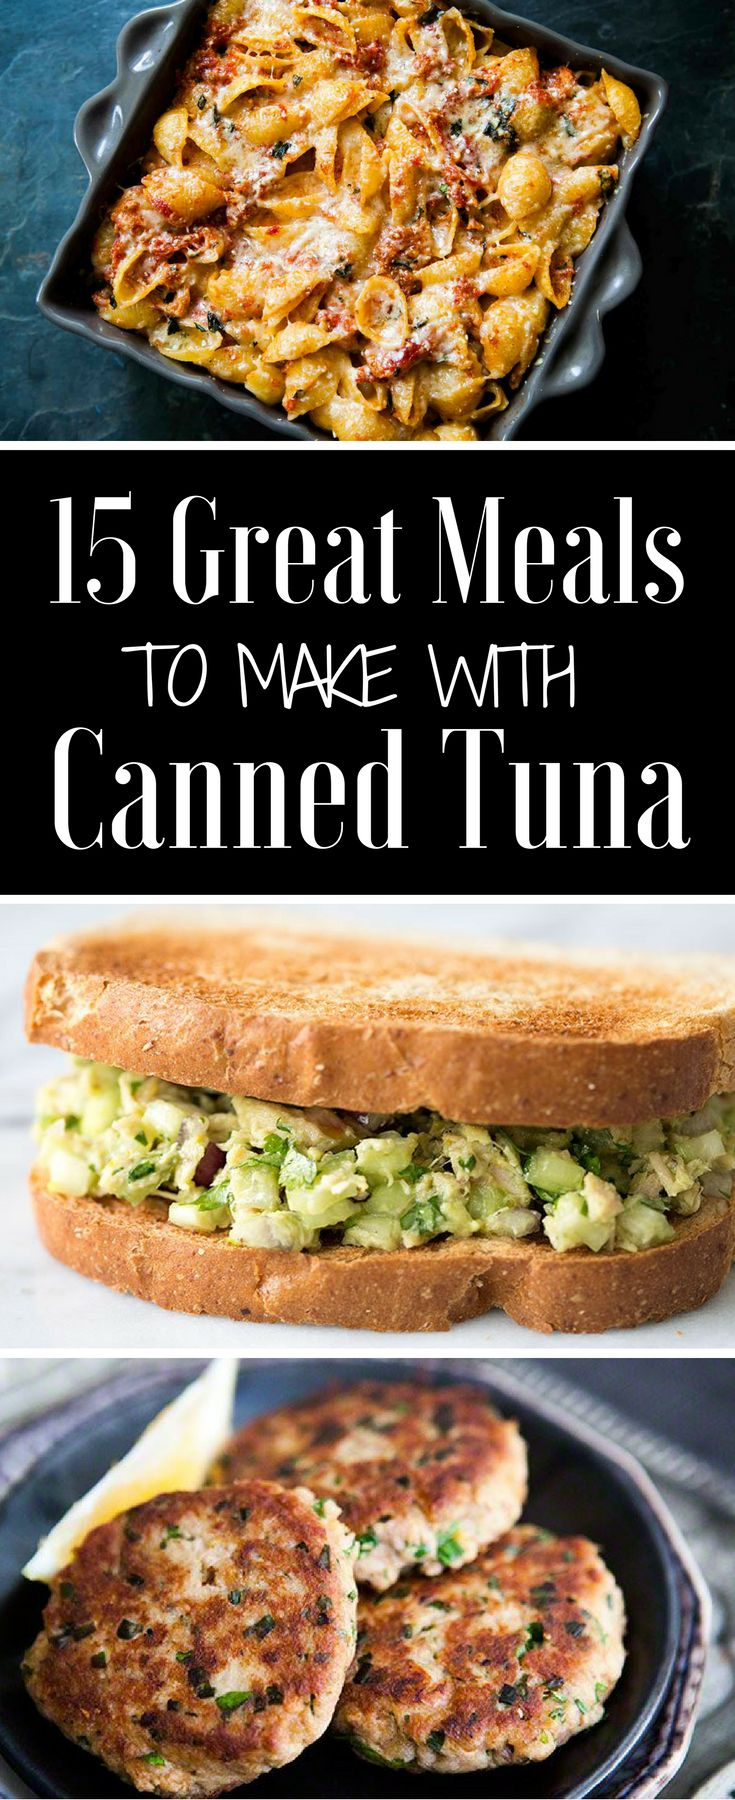 15 awesome recipes for canned tuna! Tuna patties, tuna salad, tuna pasta, and more!